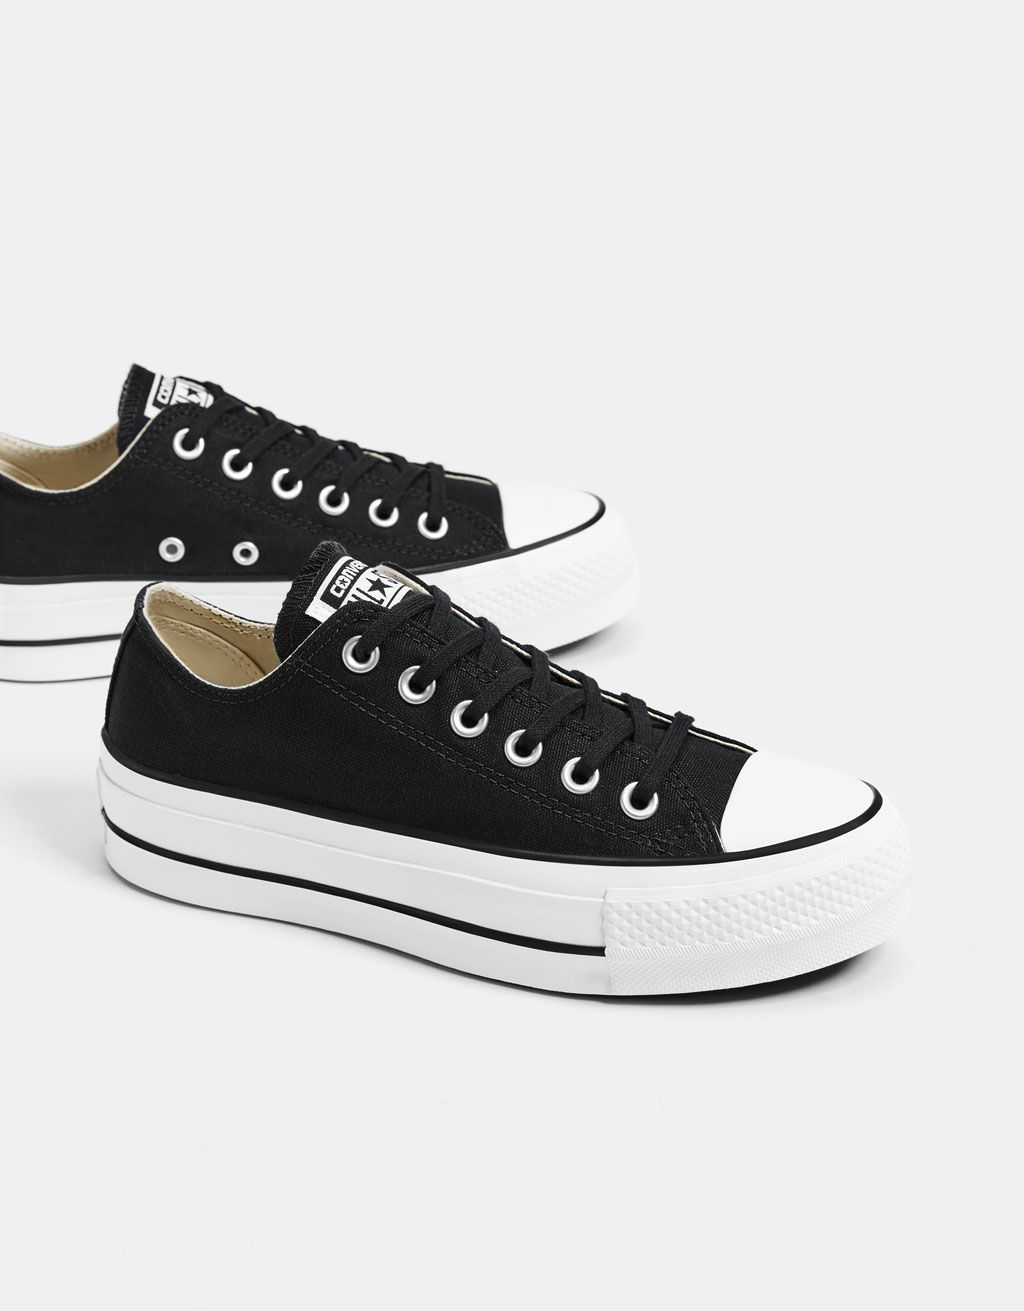 0a1f68b313b5c CONVERSE CHUCK TAYLOR ALL STAR platform sneakers in 2019